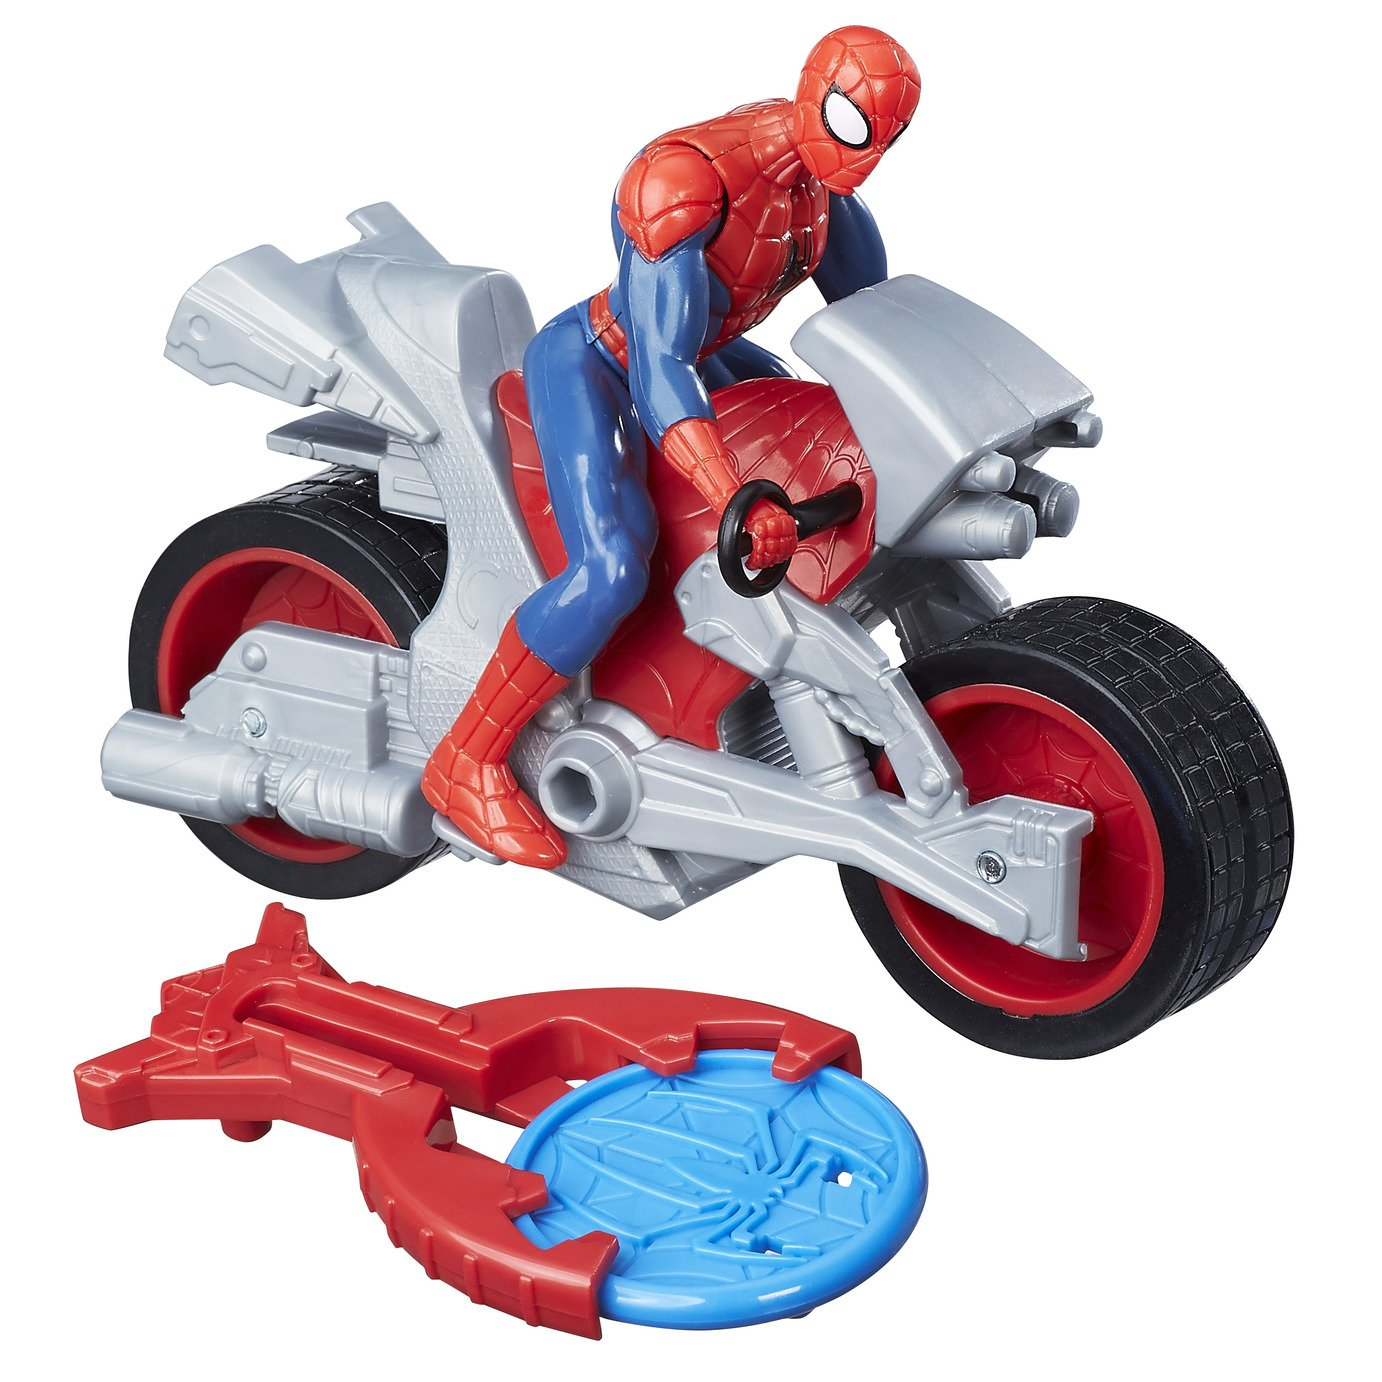 Ultimate Spider-Man Blast 'N' Go Racers